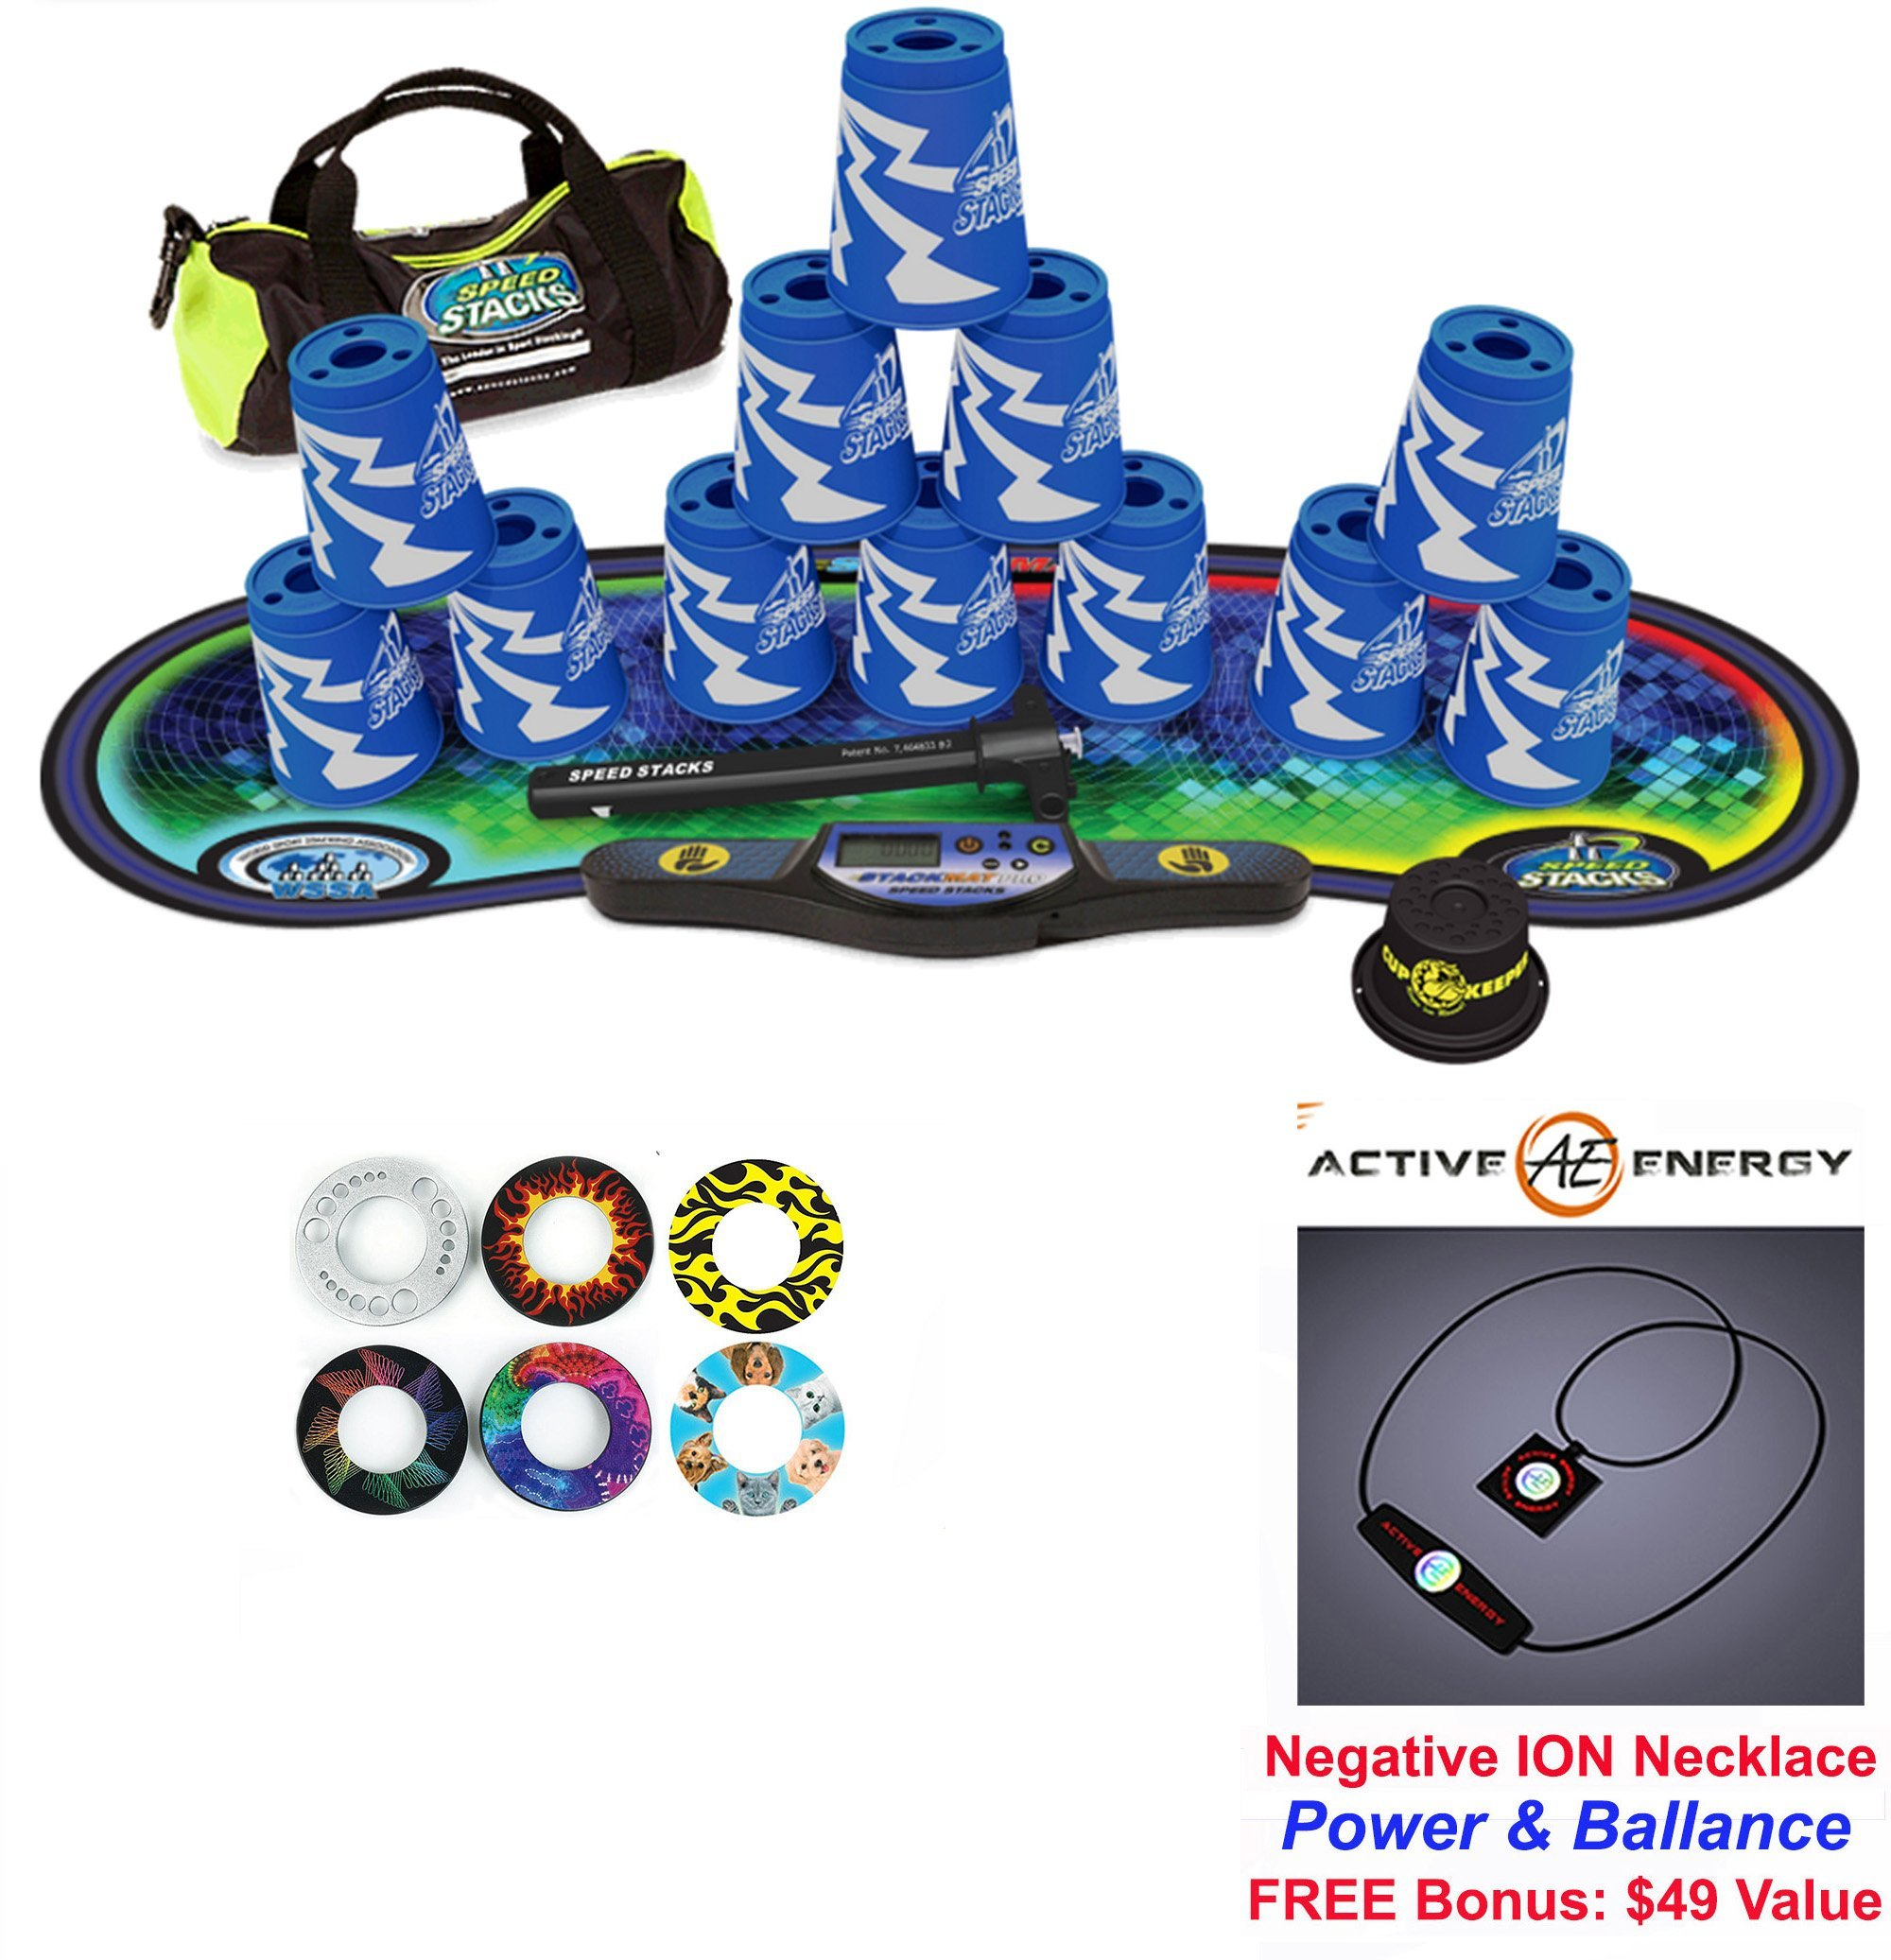 Speed Stacks Custom Combo Set - The Works: 12 ATOMIC PUNCH 4'' Cups, Cup Keeper, Quick Release Stem, Pro Timer, Gen 3 Premium VOXEL GLOW Mat, 6 Snap Tops, Gear Bag + FREE: Active Energy Necklace $49